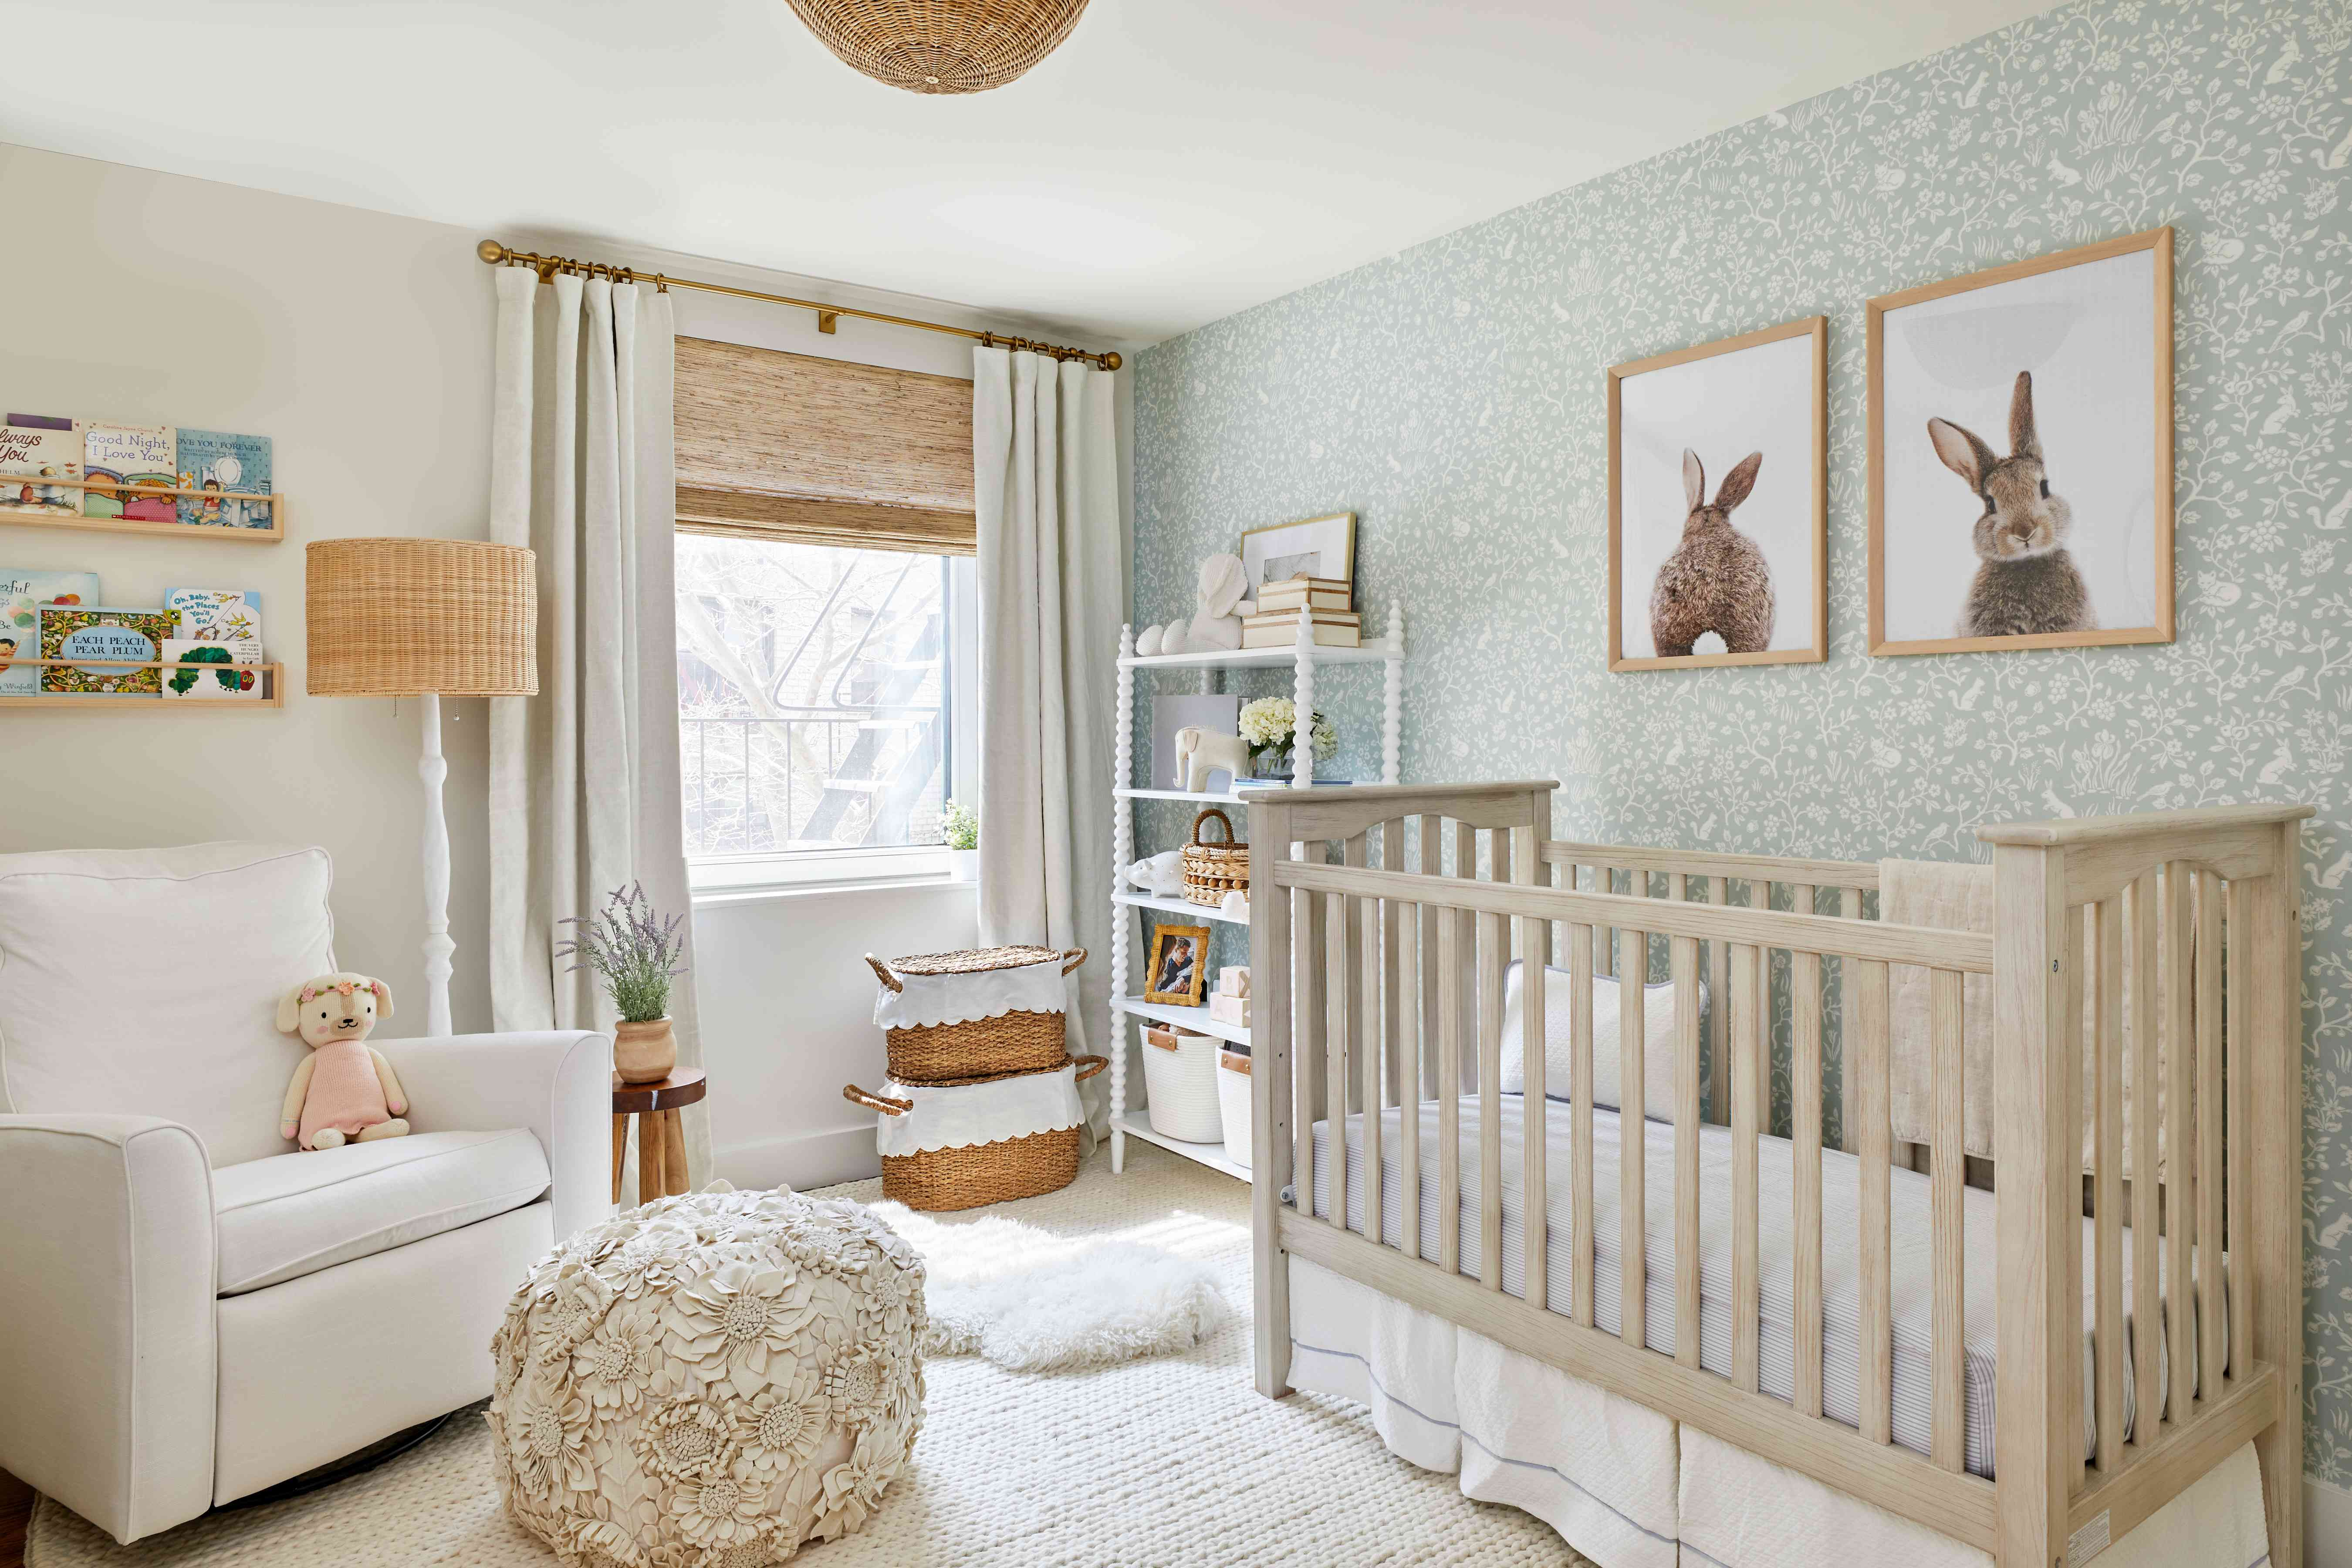 a neutral nursery room features a mint green wallpaper, white oak crib, and a white rug, drapes, bookshelves, and more